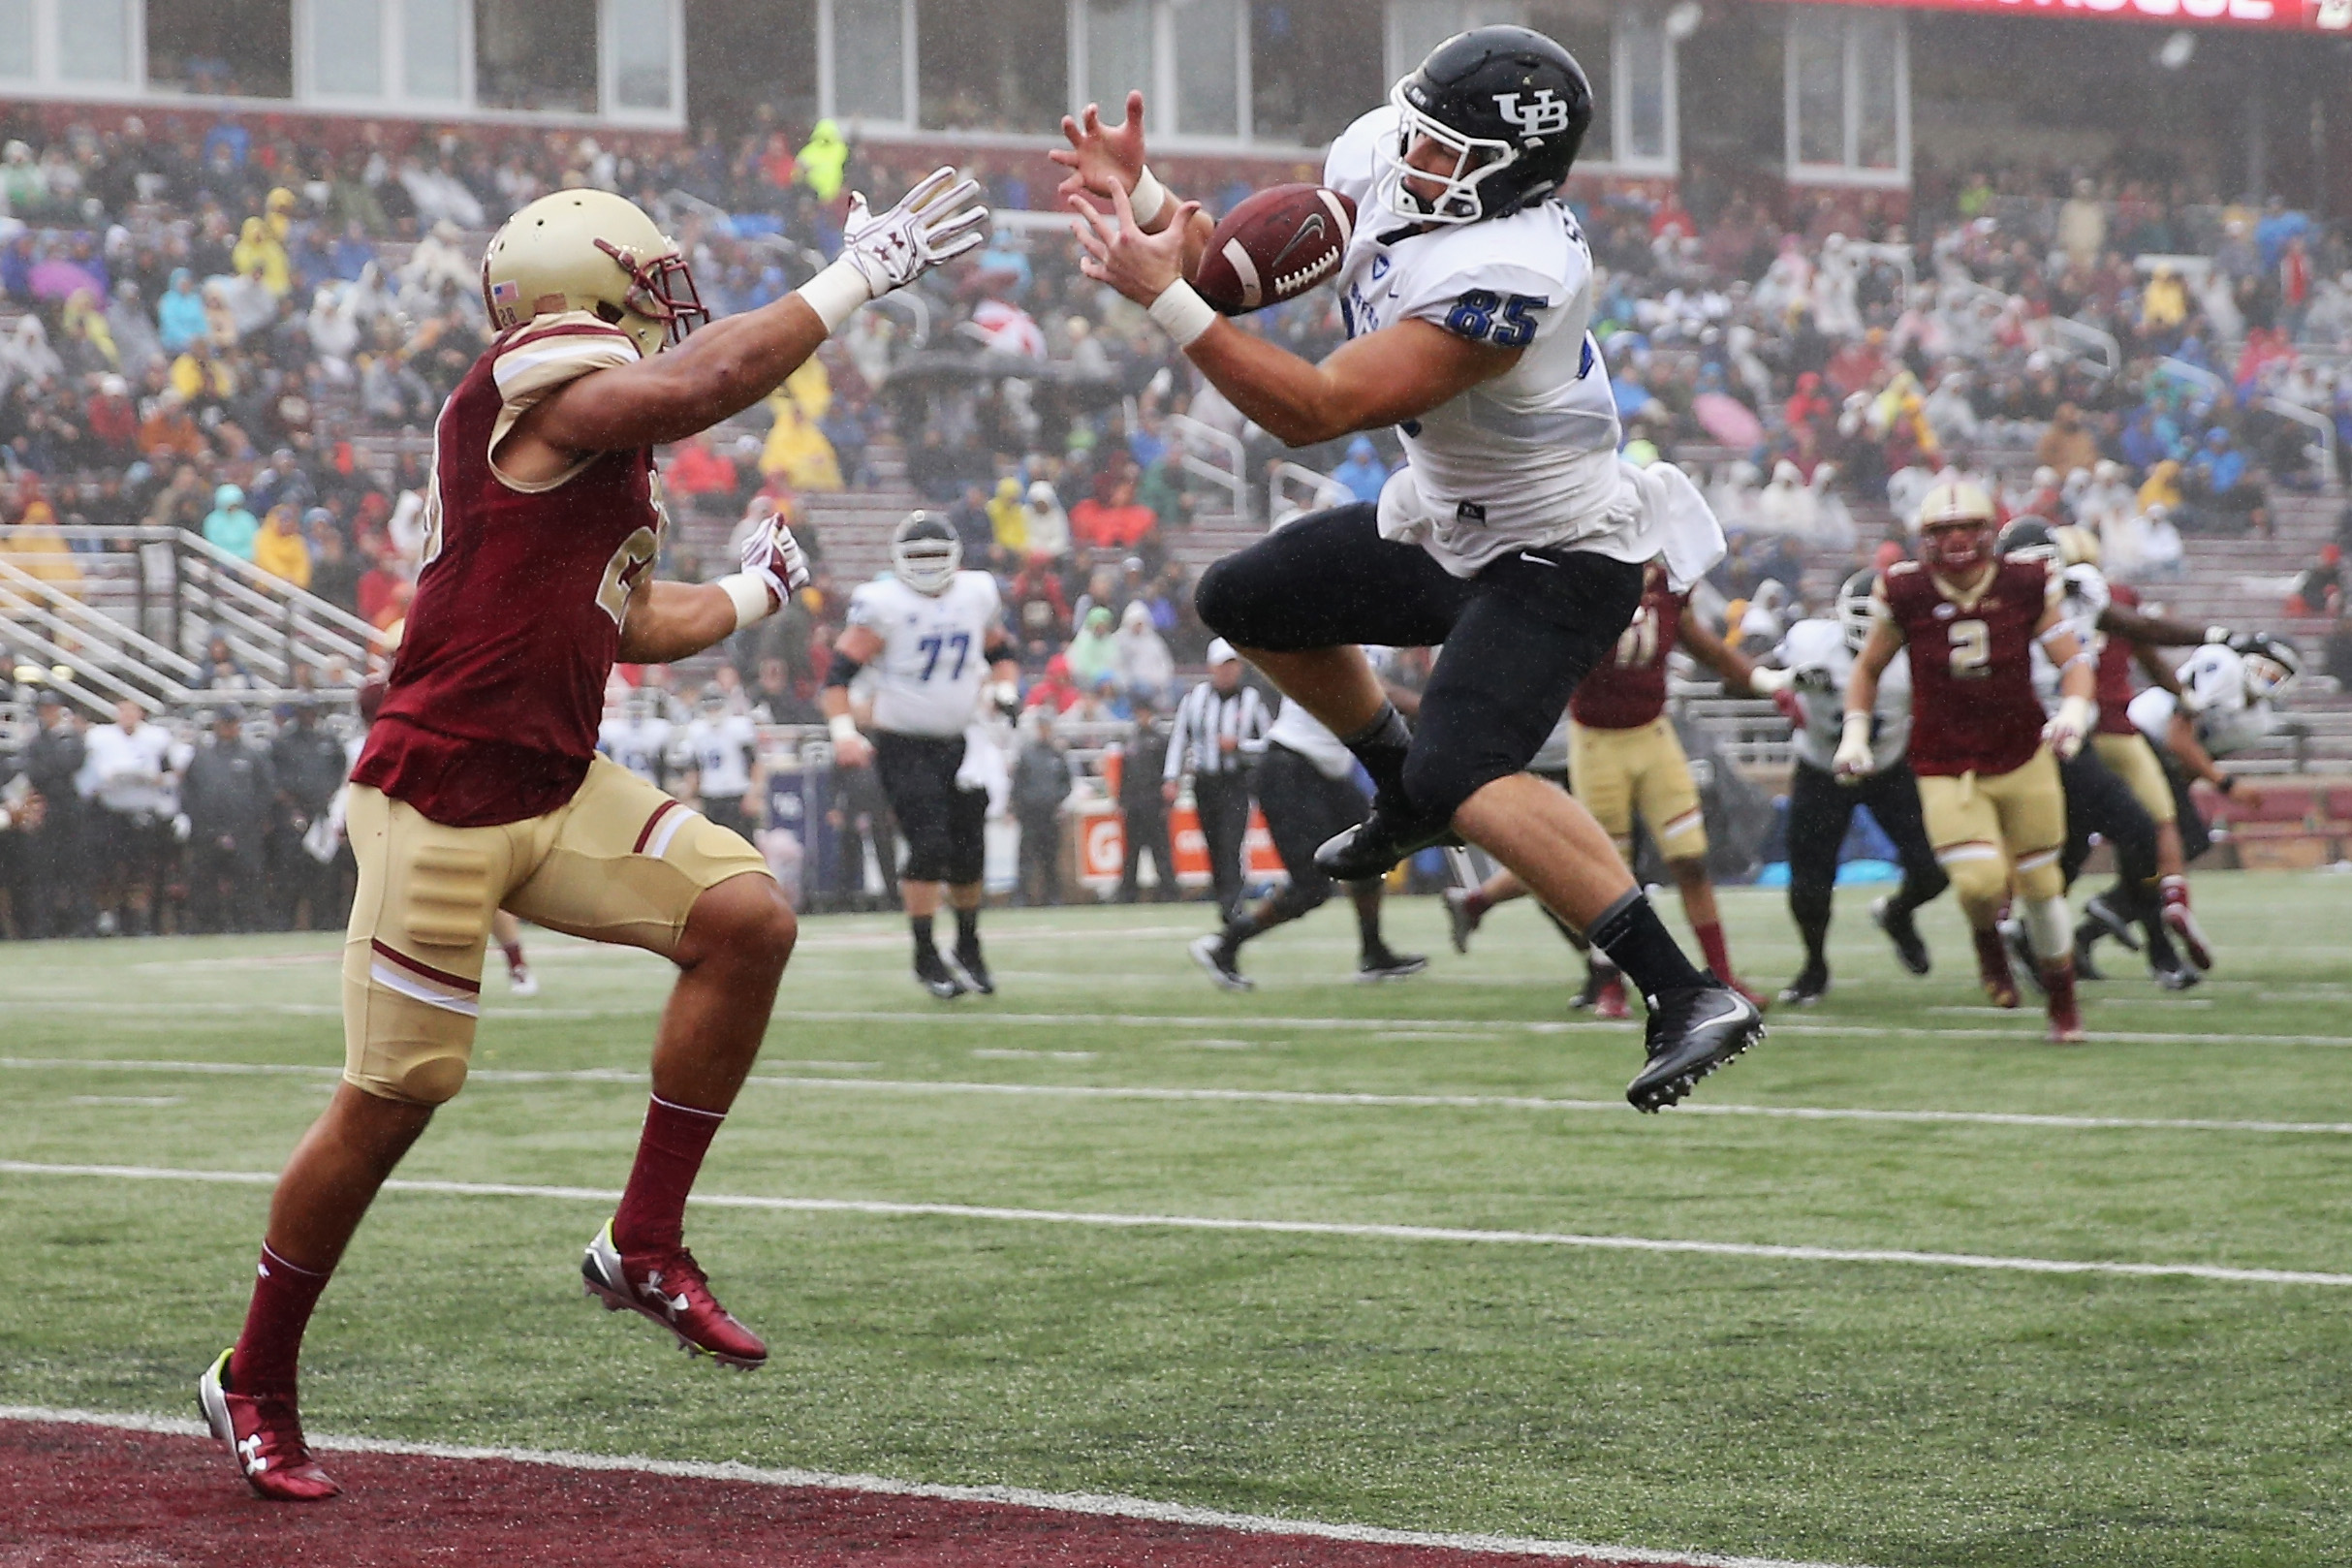 Boston College linebacker Matt Milano, seen here defending in a game against UB,  won the Eagles' MVP award in 2016. (Getty Images)